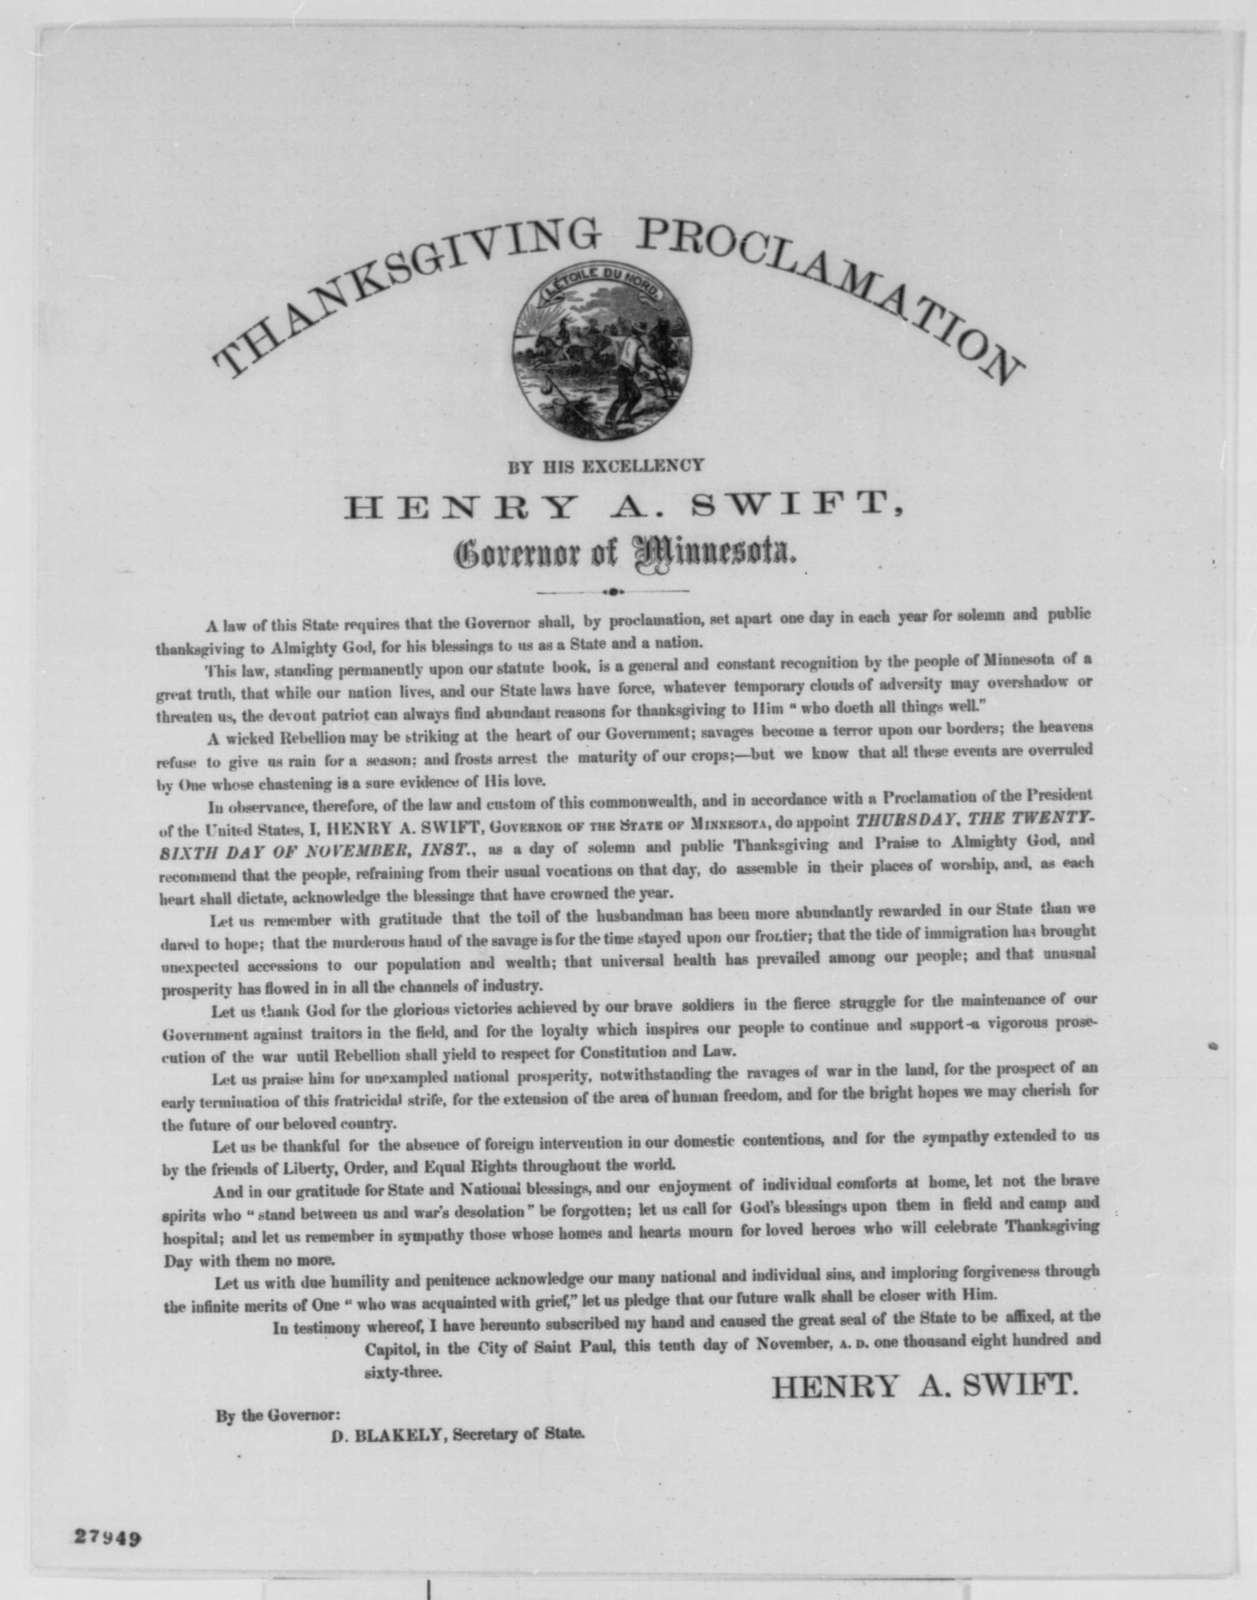 Henry A. Swift, Tuesday, November 10, 1863  (Printed proclamation)